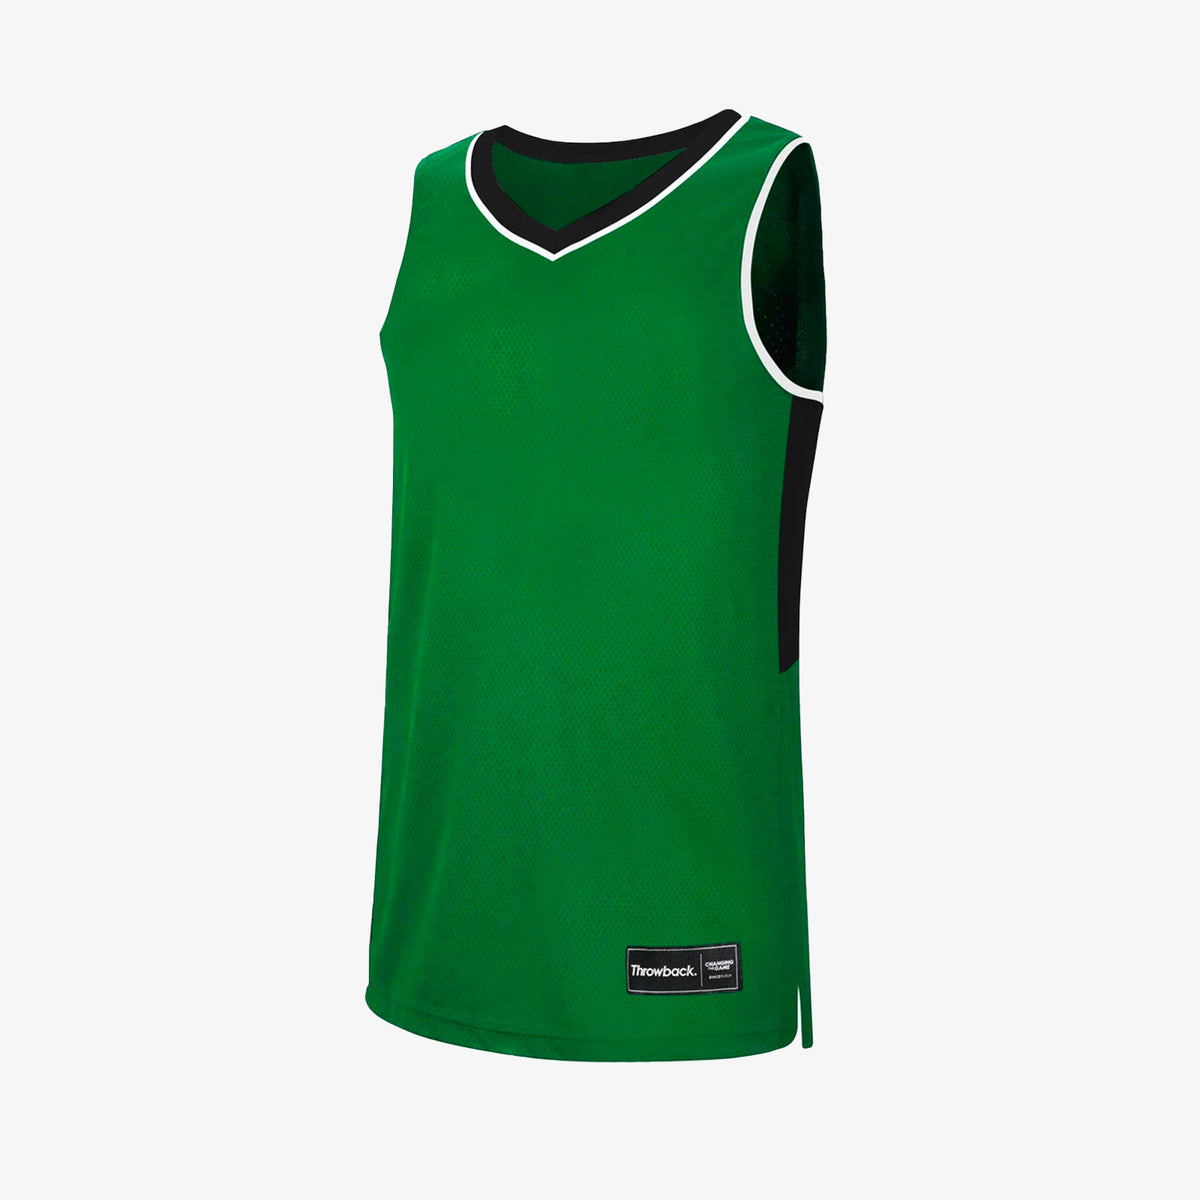 Throwback Oncourt Pro Jersey - Emerald/Black/White